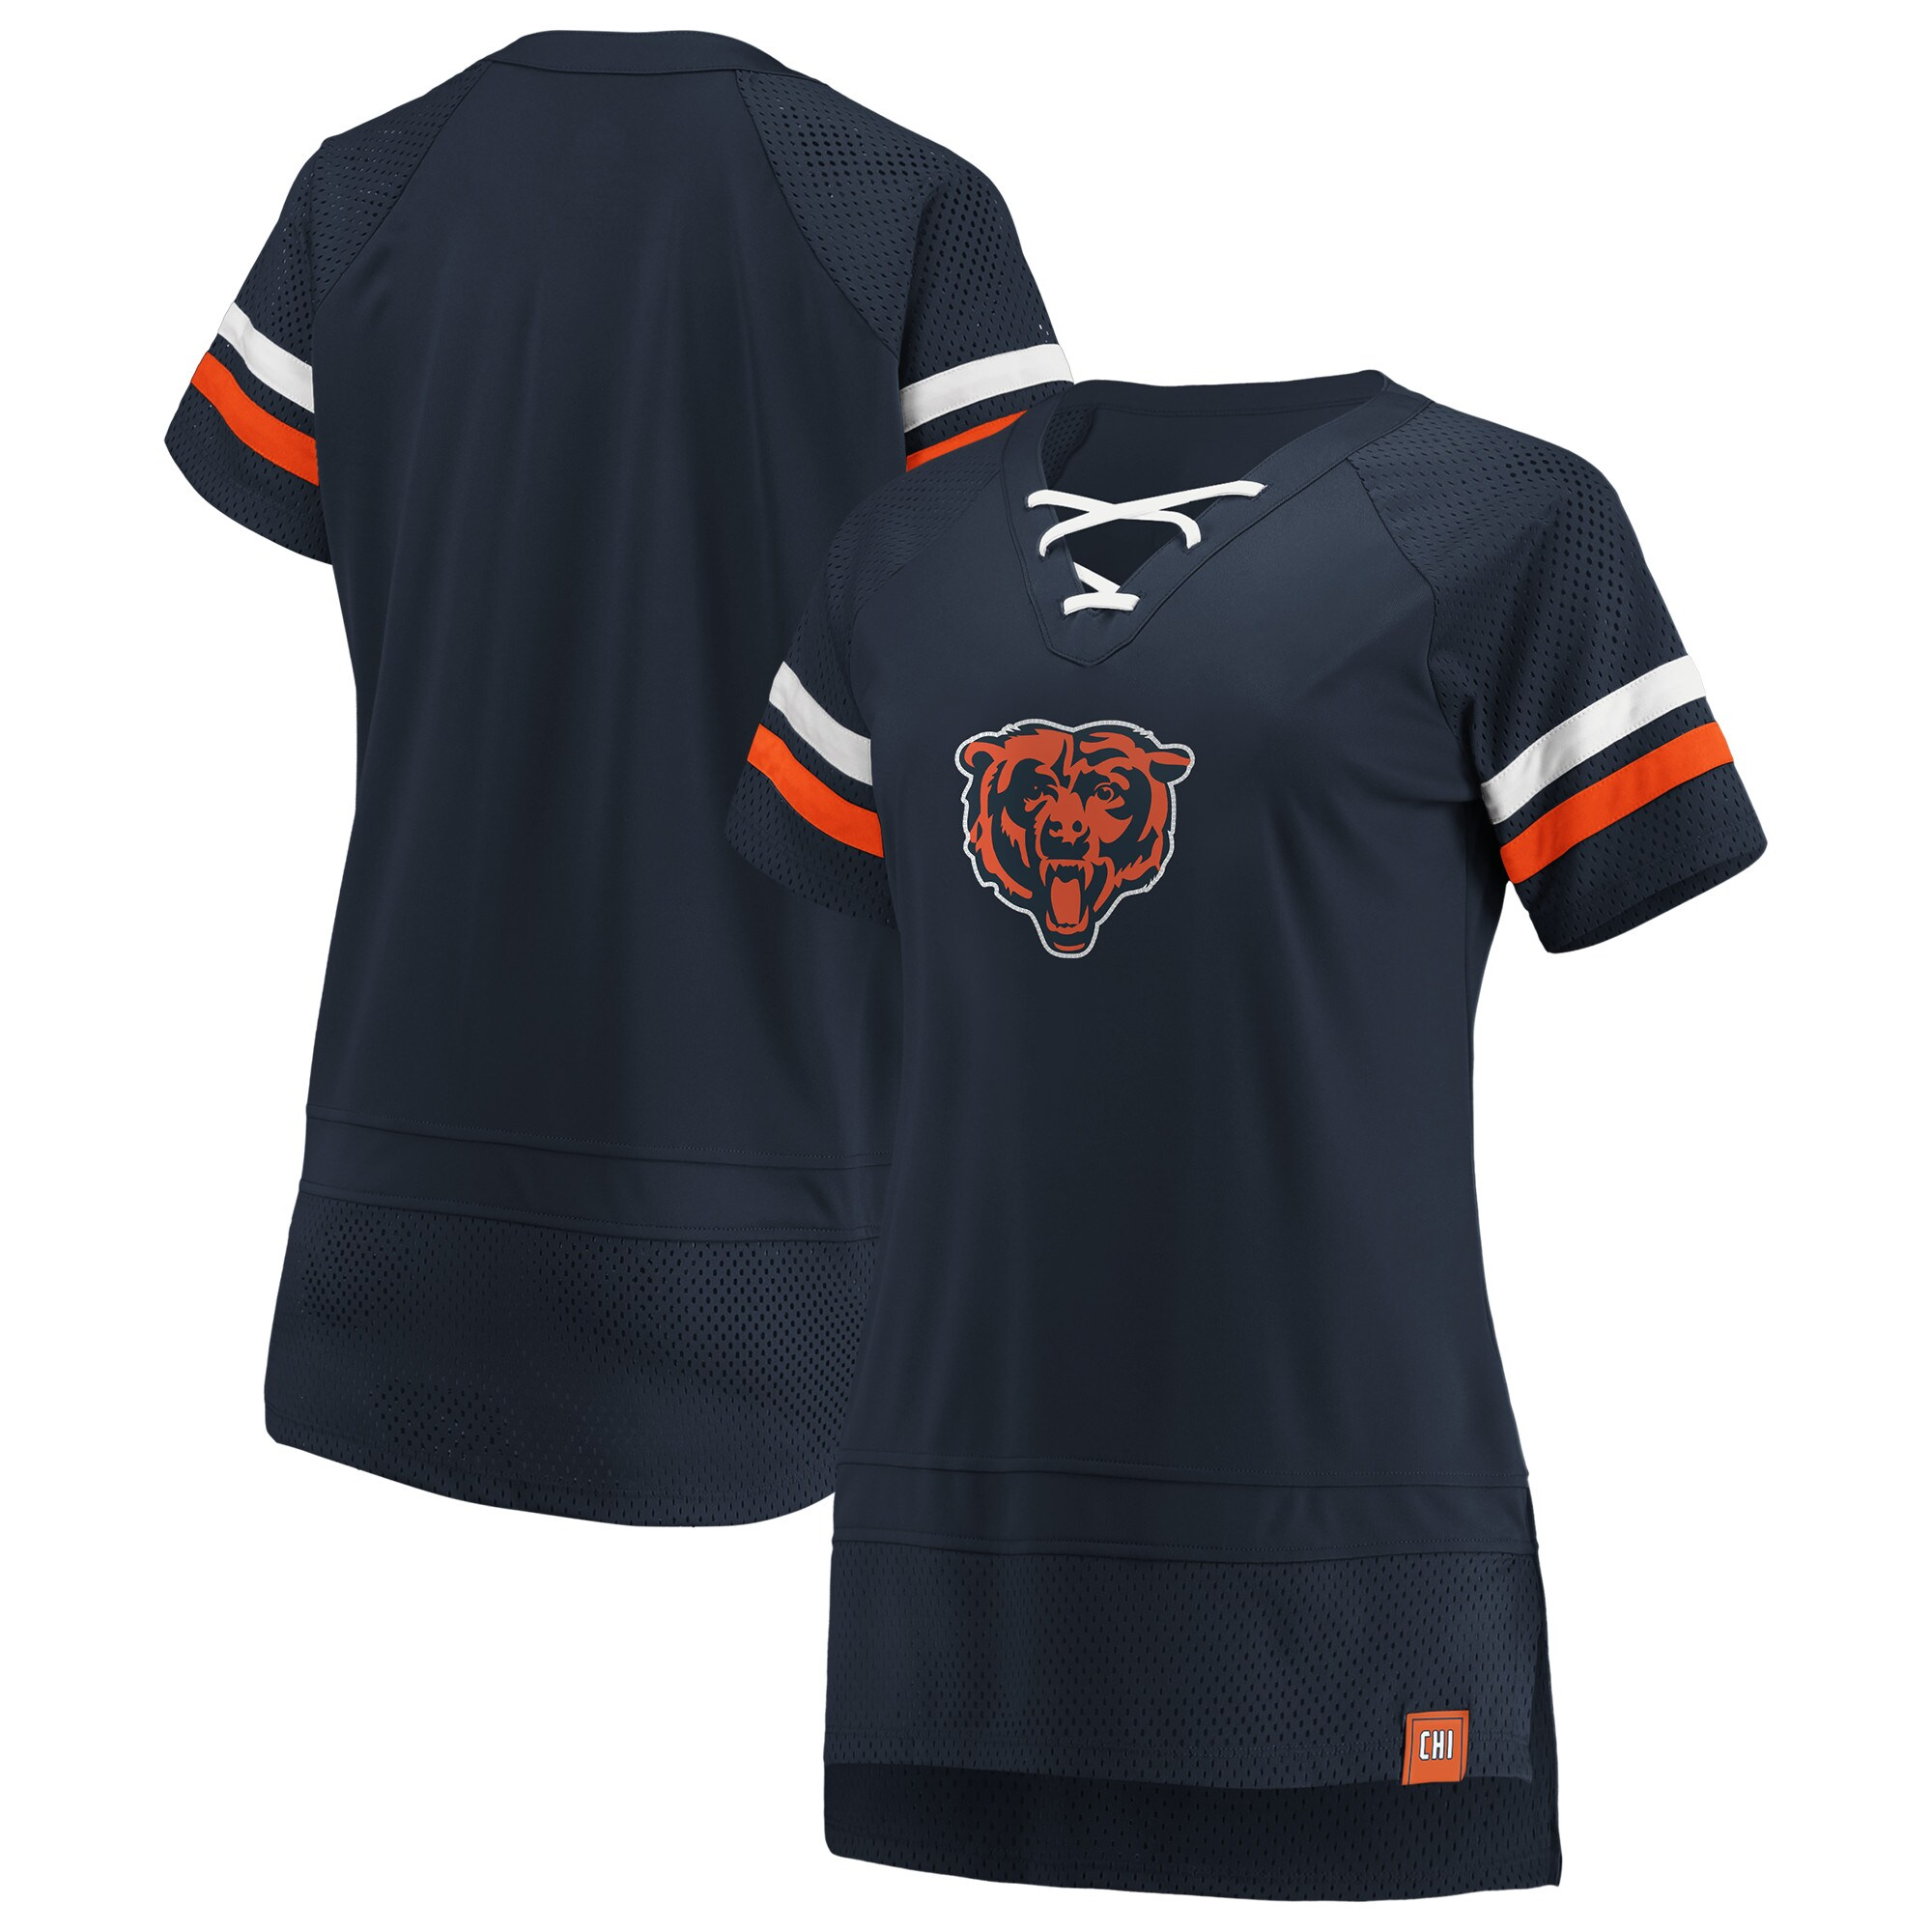 Chicago Bears Fanatics Branded Women's Draft Me Lace Up T-Shirt - Navy/Orange